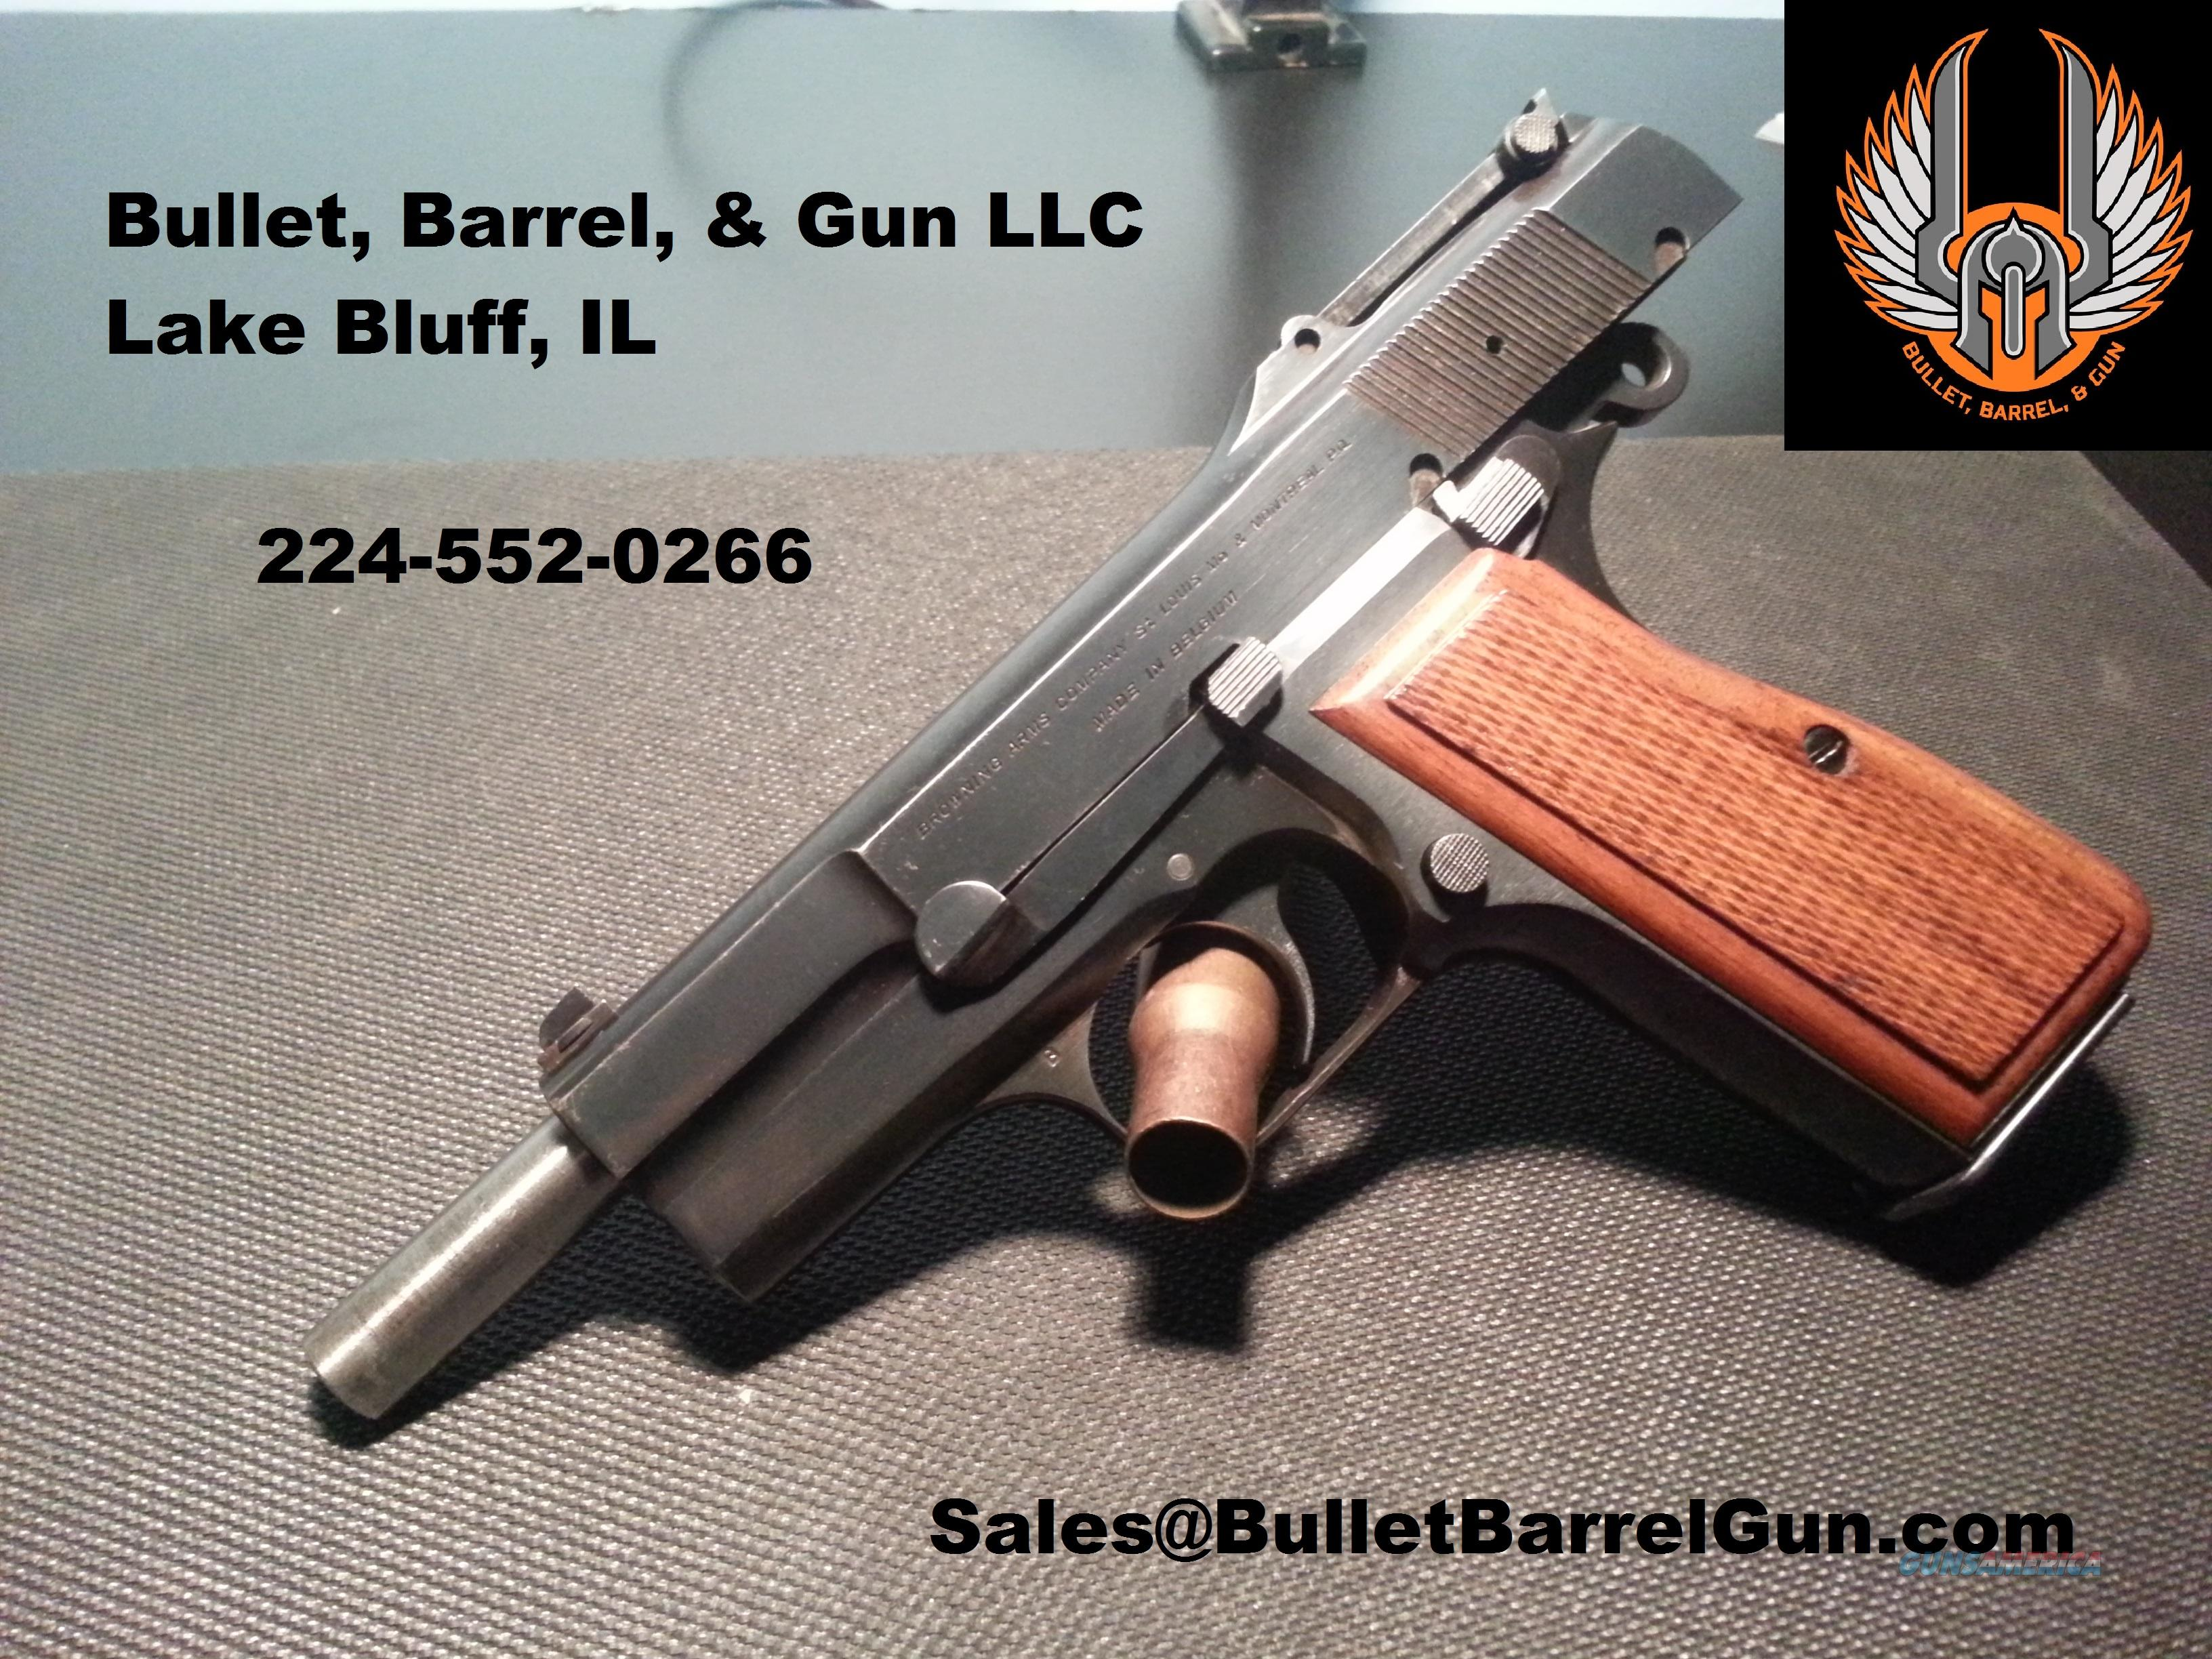 Browning Hi Power Tangent sight T serial number  Guns > Pistols > Browning Pistols > Hi Power